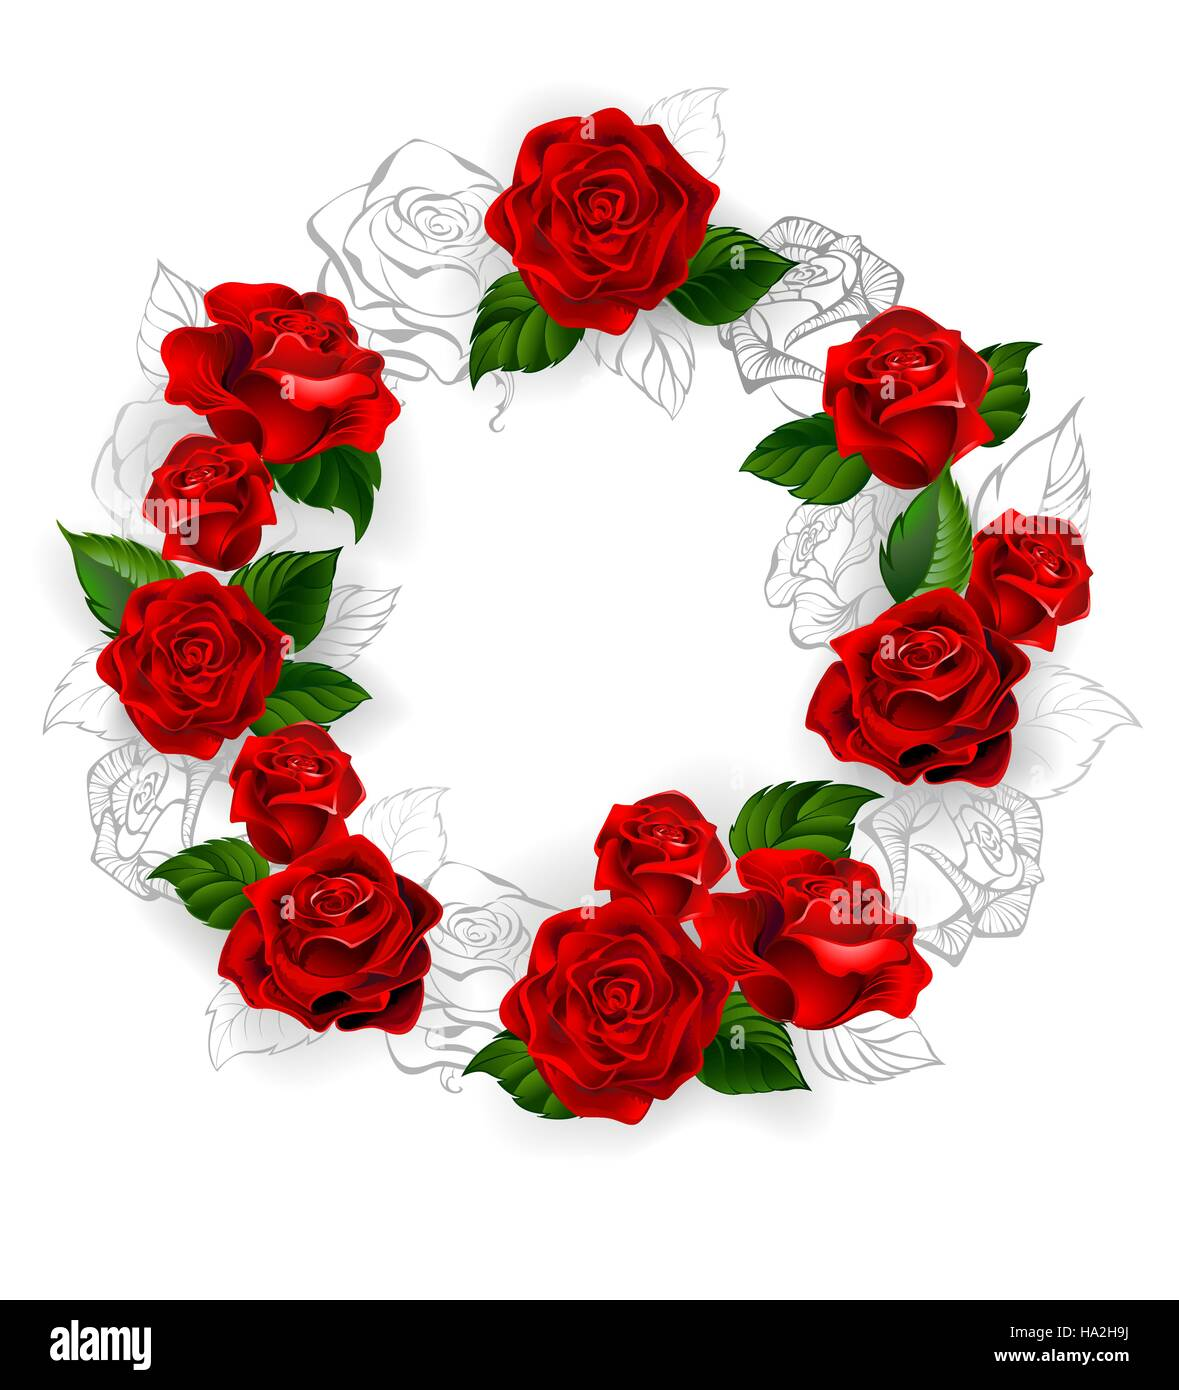 Circle Of Red Volume And Draw A Pencil Outline Of Roses On A White